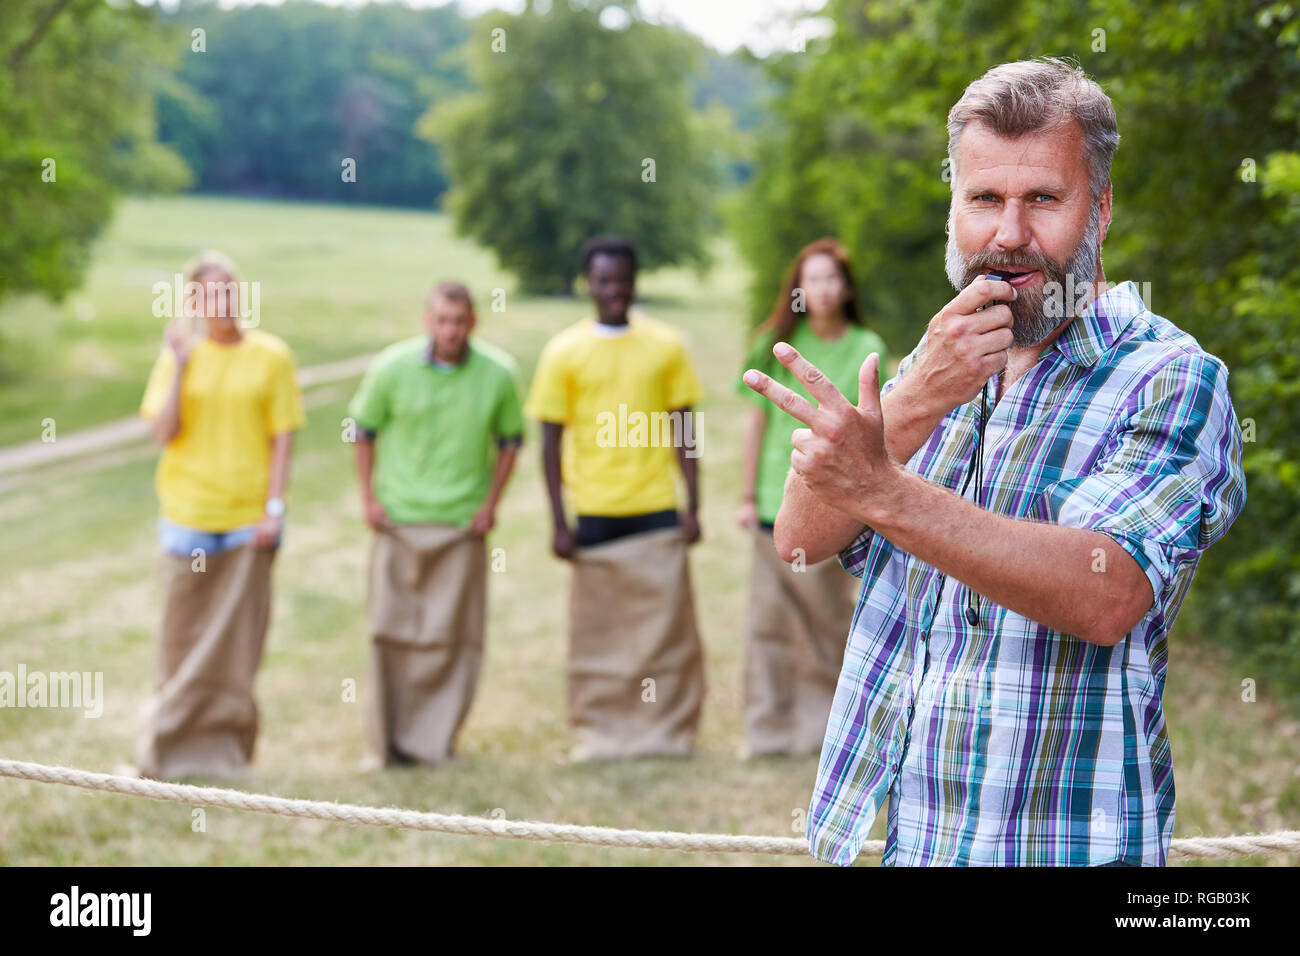 Referee just before the start of the sack race competition as a sports event - Stock Image